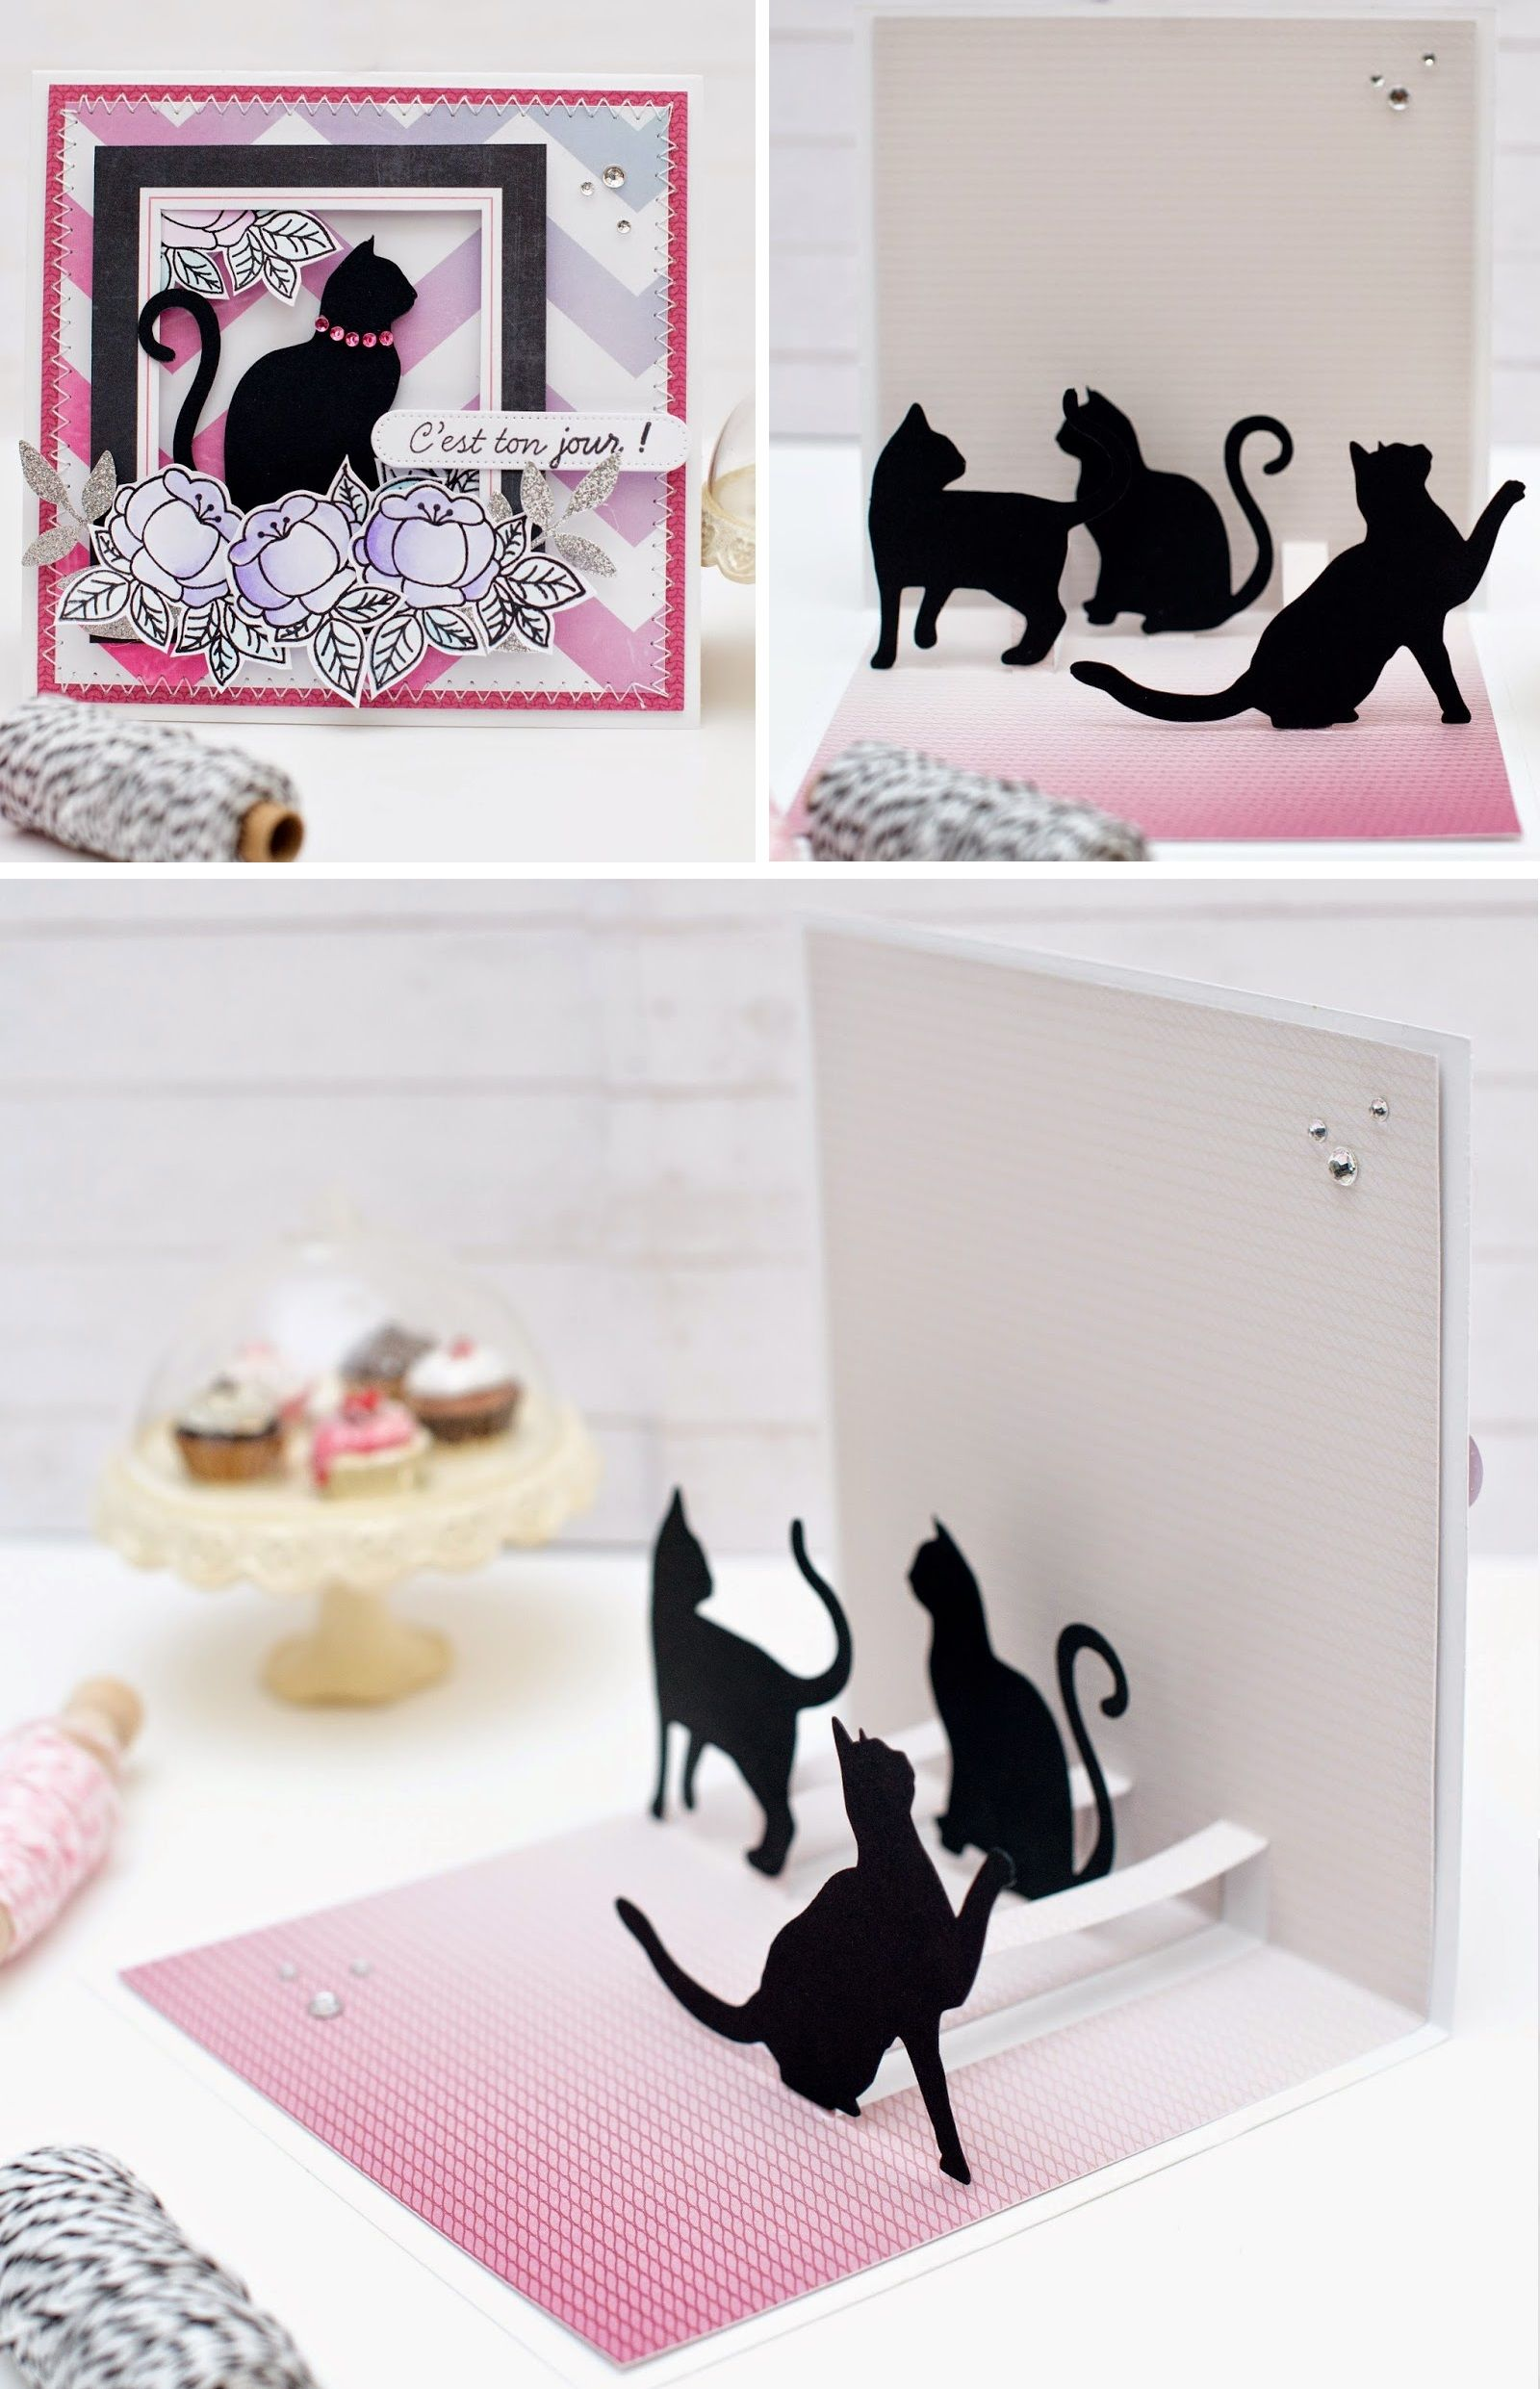 carte pop up chats explications cards papercrafts 2 pinterest cards kirigami and scrap. Black Bedroom Furniture Sets. Home Design Ideas